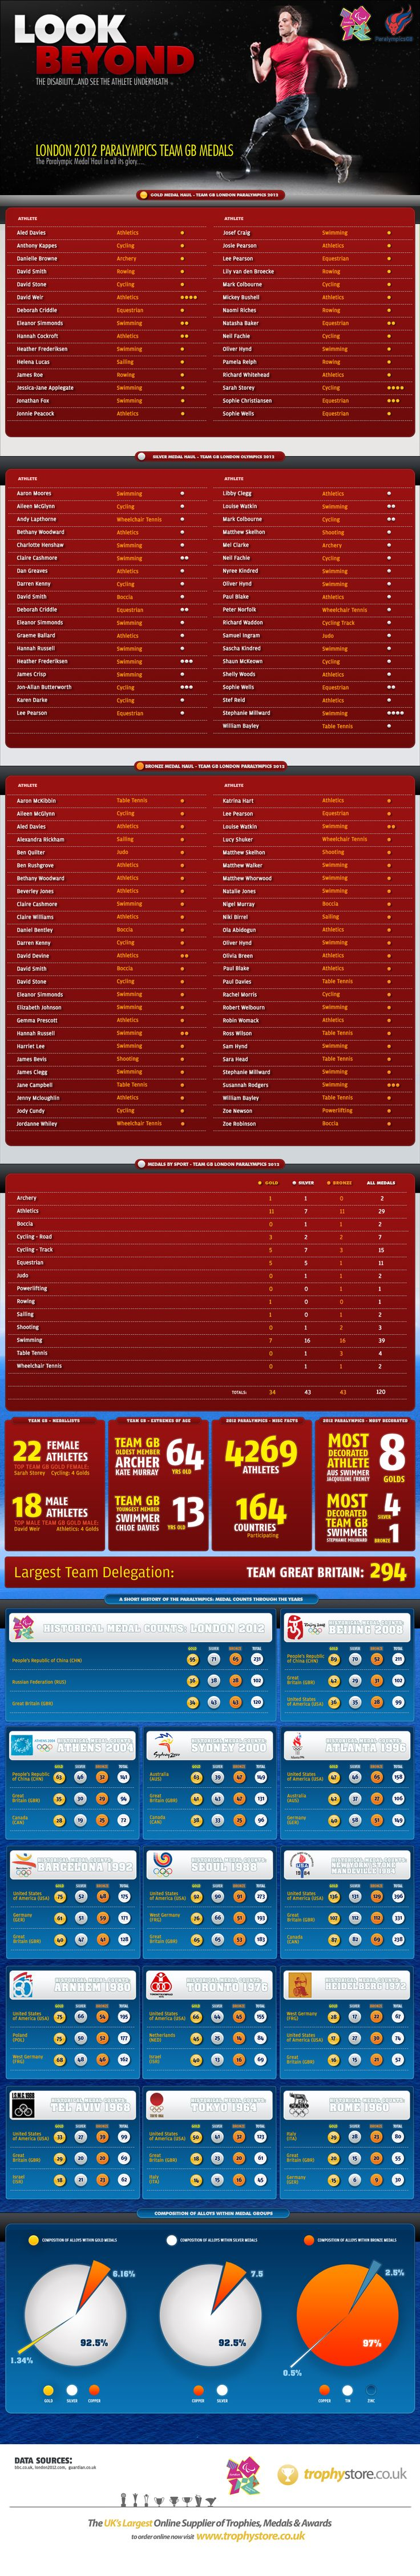 London 2012 Paralympics Team GB Medals Infographic